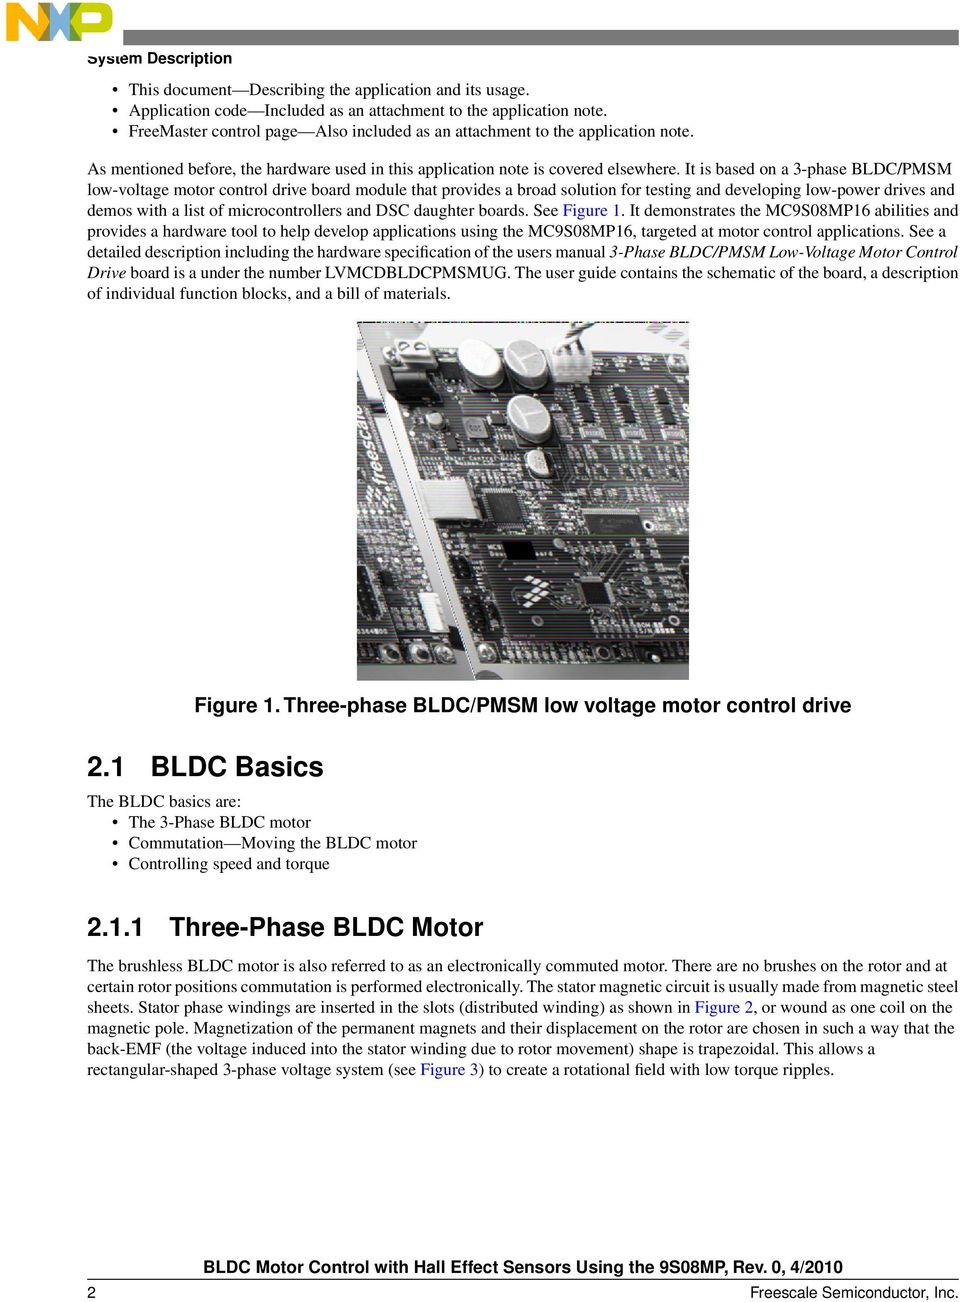 BLDC Motor Control with Hall Effect Sensors Using the 9S08MP - PDF